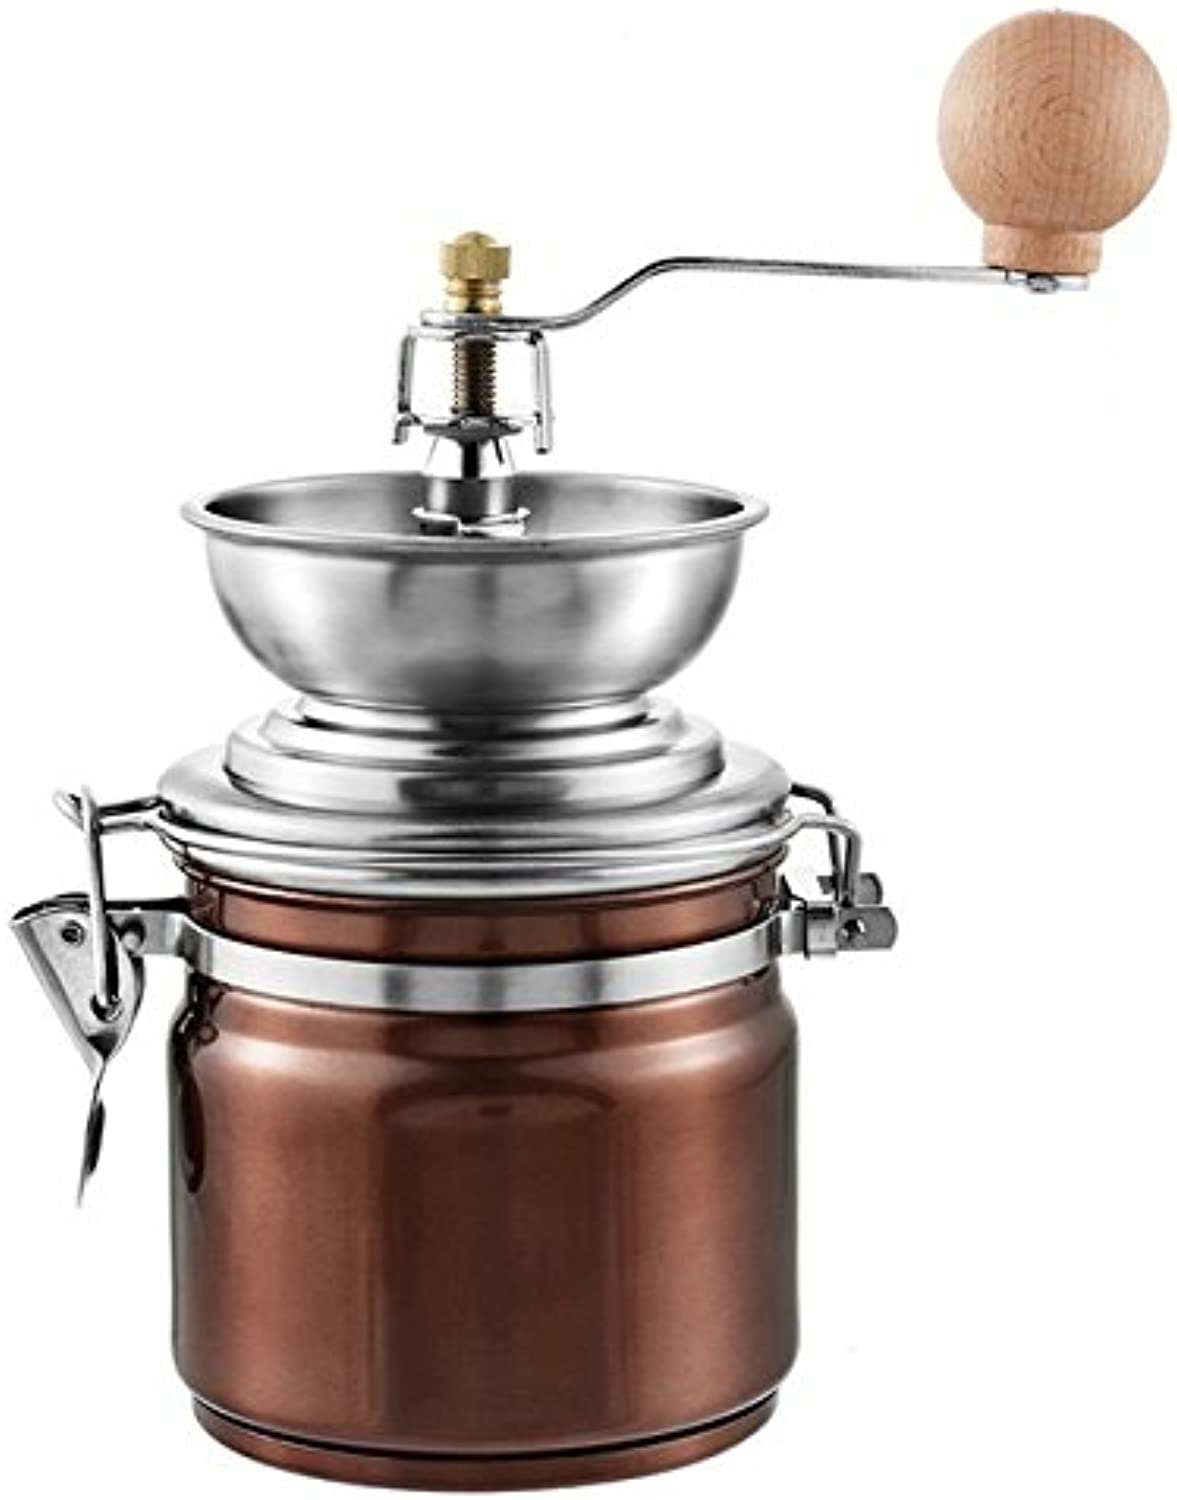 Farmerly Hoomall Classic Manual Hand Coffee Beans Mill Stainless Steel Grinder Home Kitchen Tool Thickness Adjustable Ceramic Movement   Brown